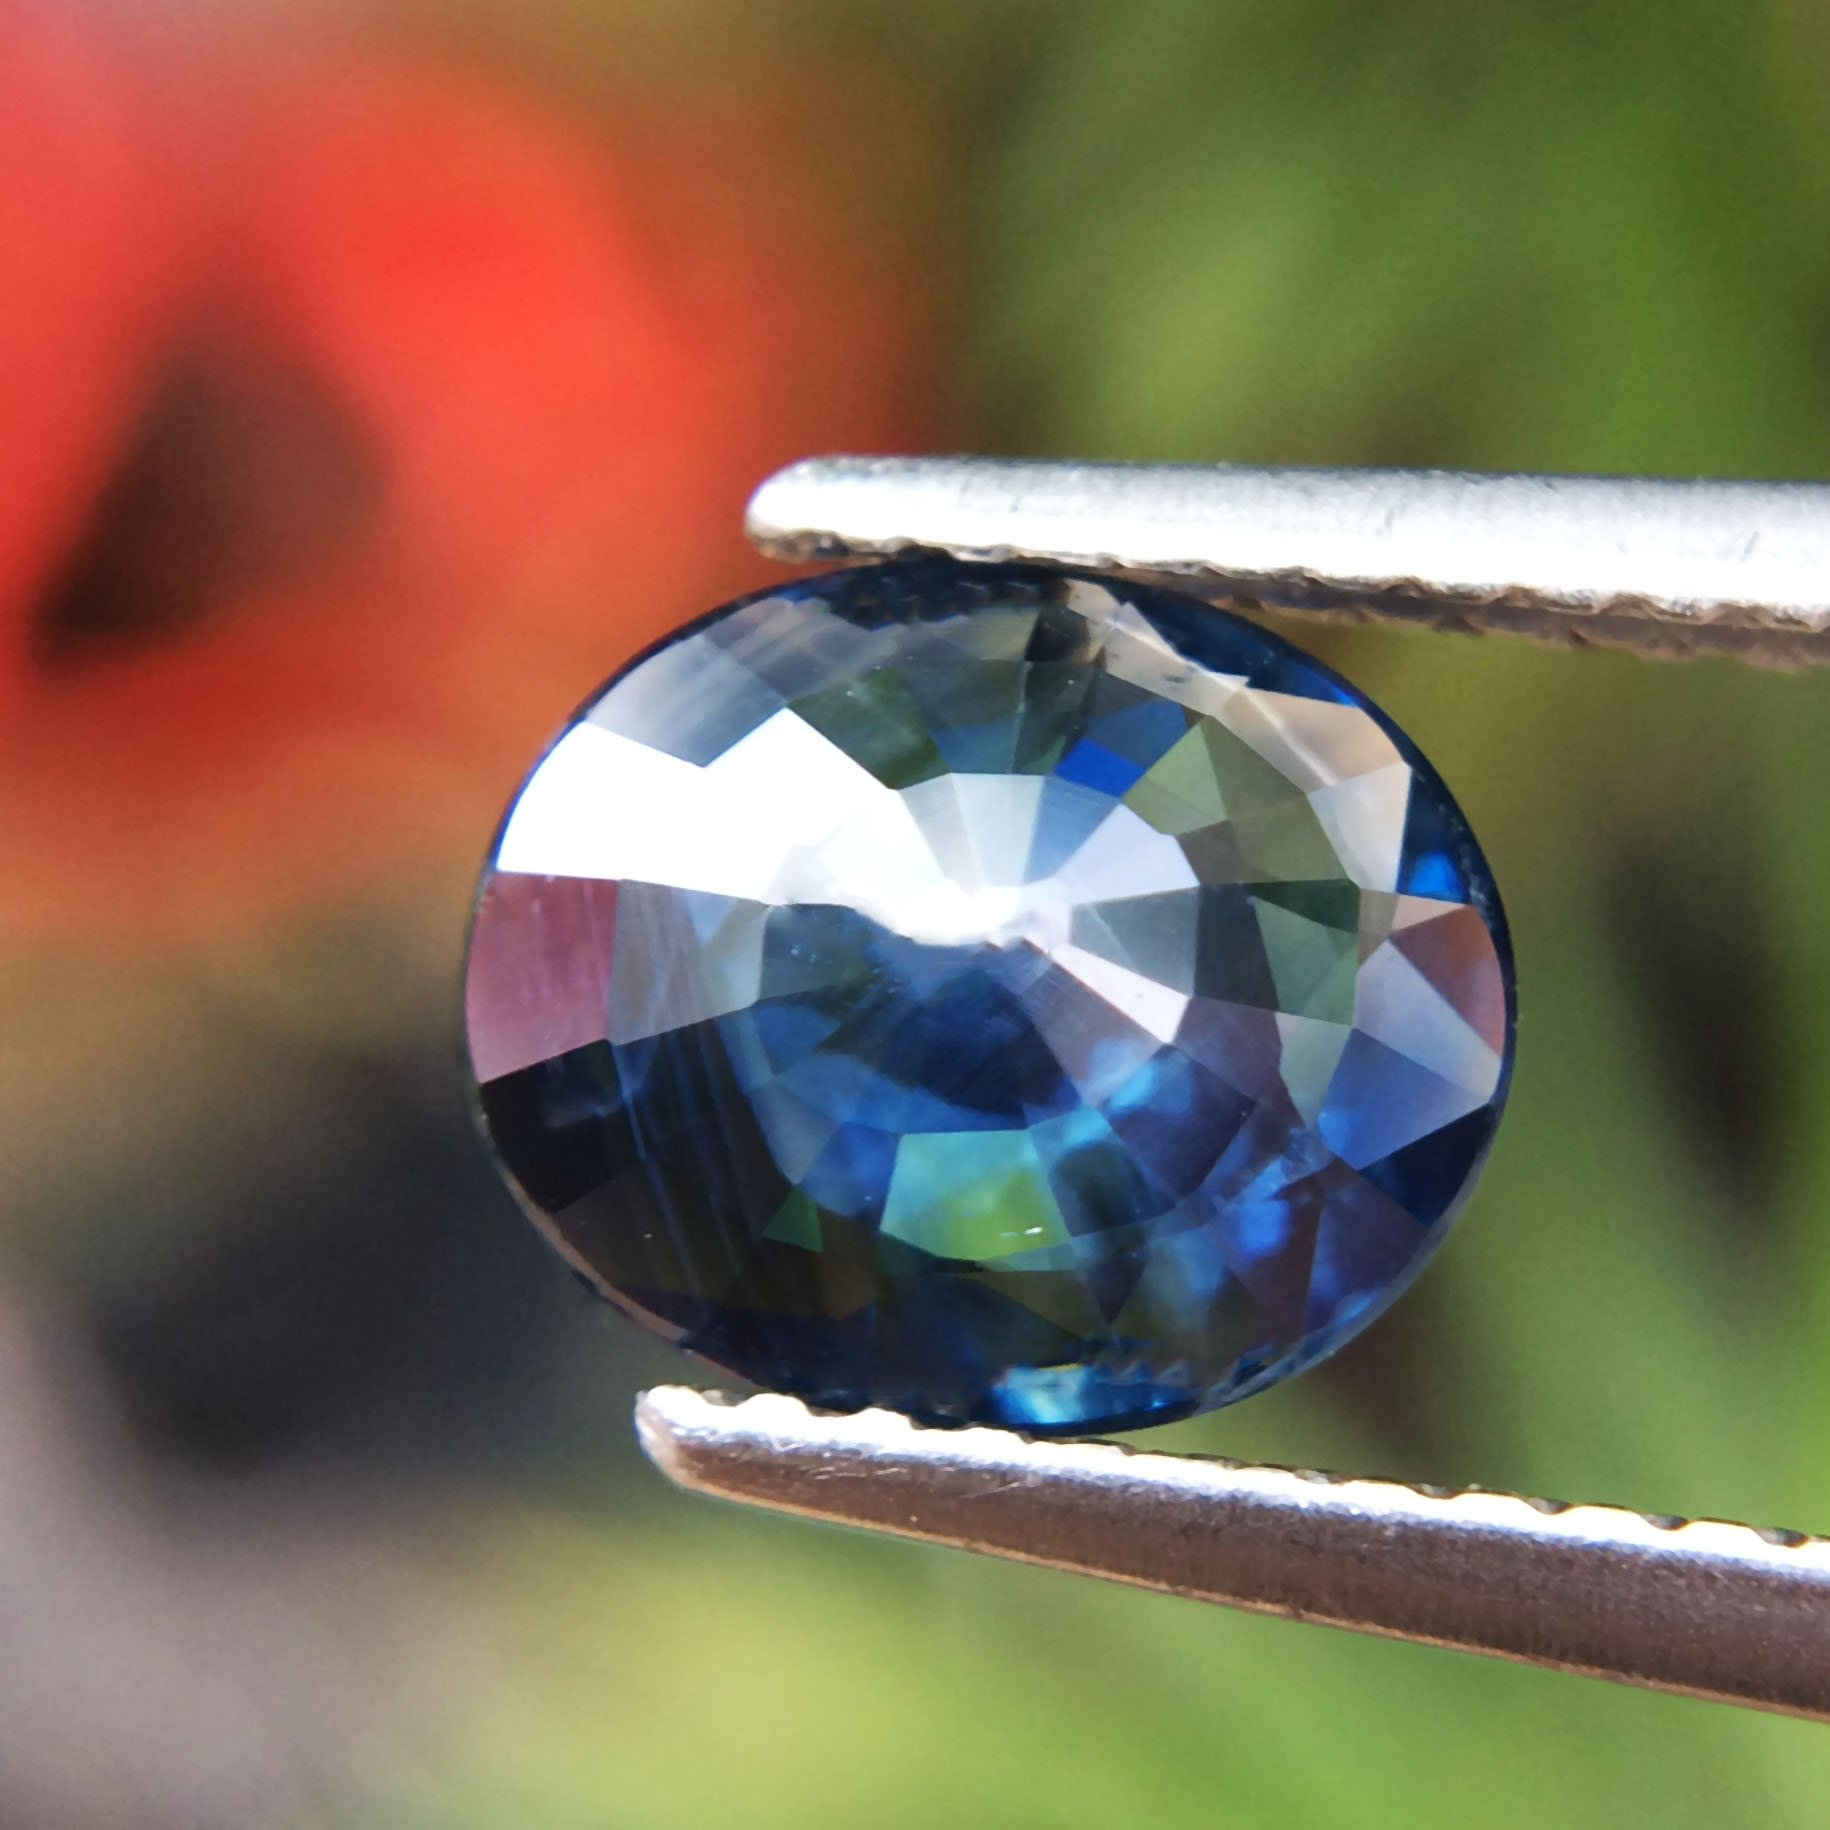 1.51ct Natural Oval Unheated Blue Sapphire Thailand #B by Lovemom (Image #5)